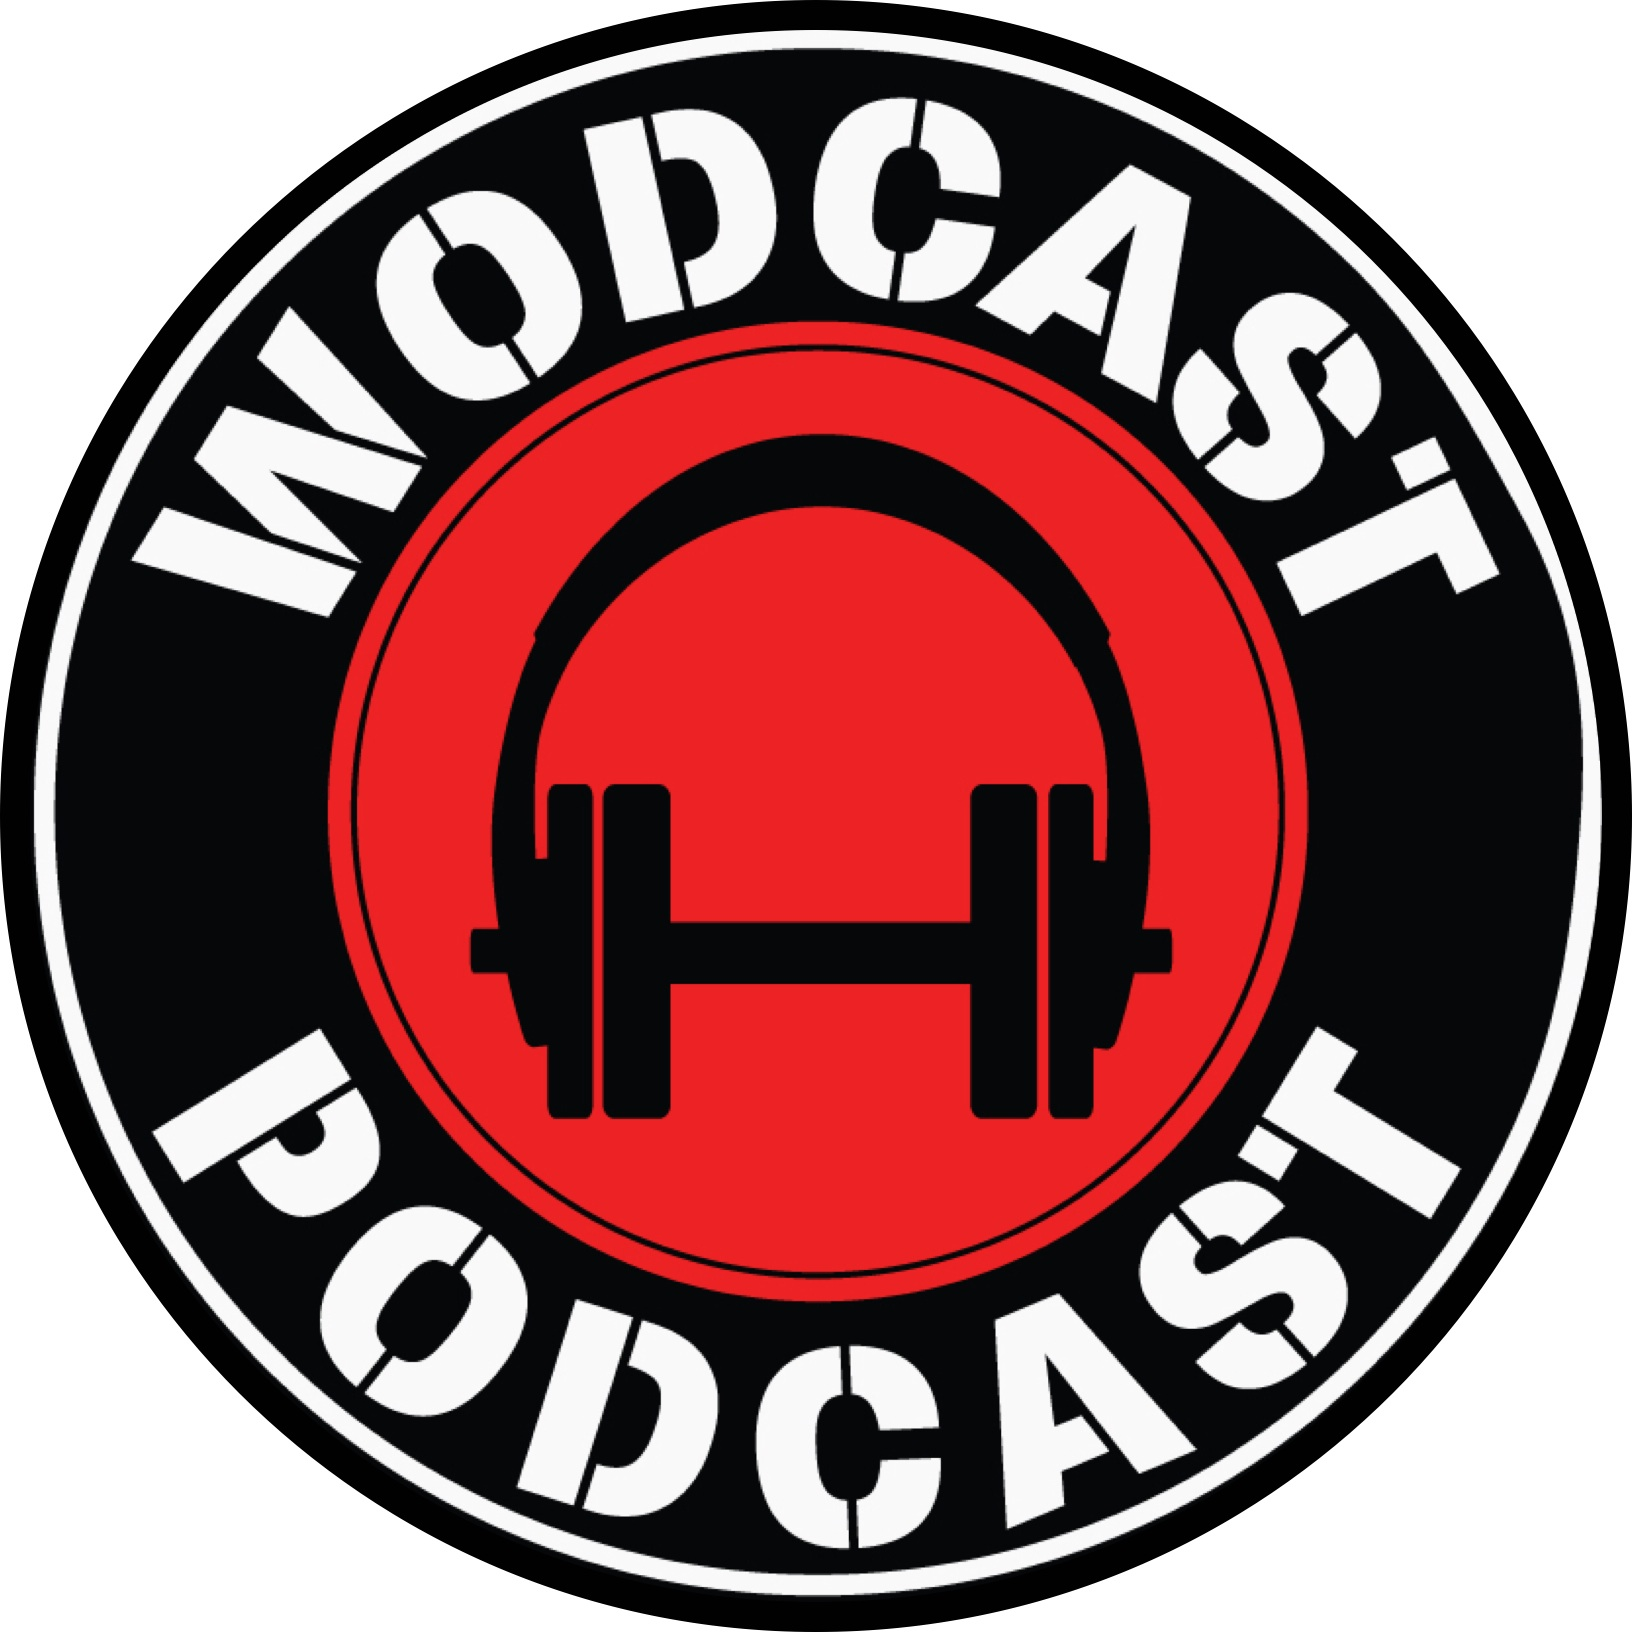 The WODcast Podcast